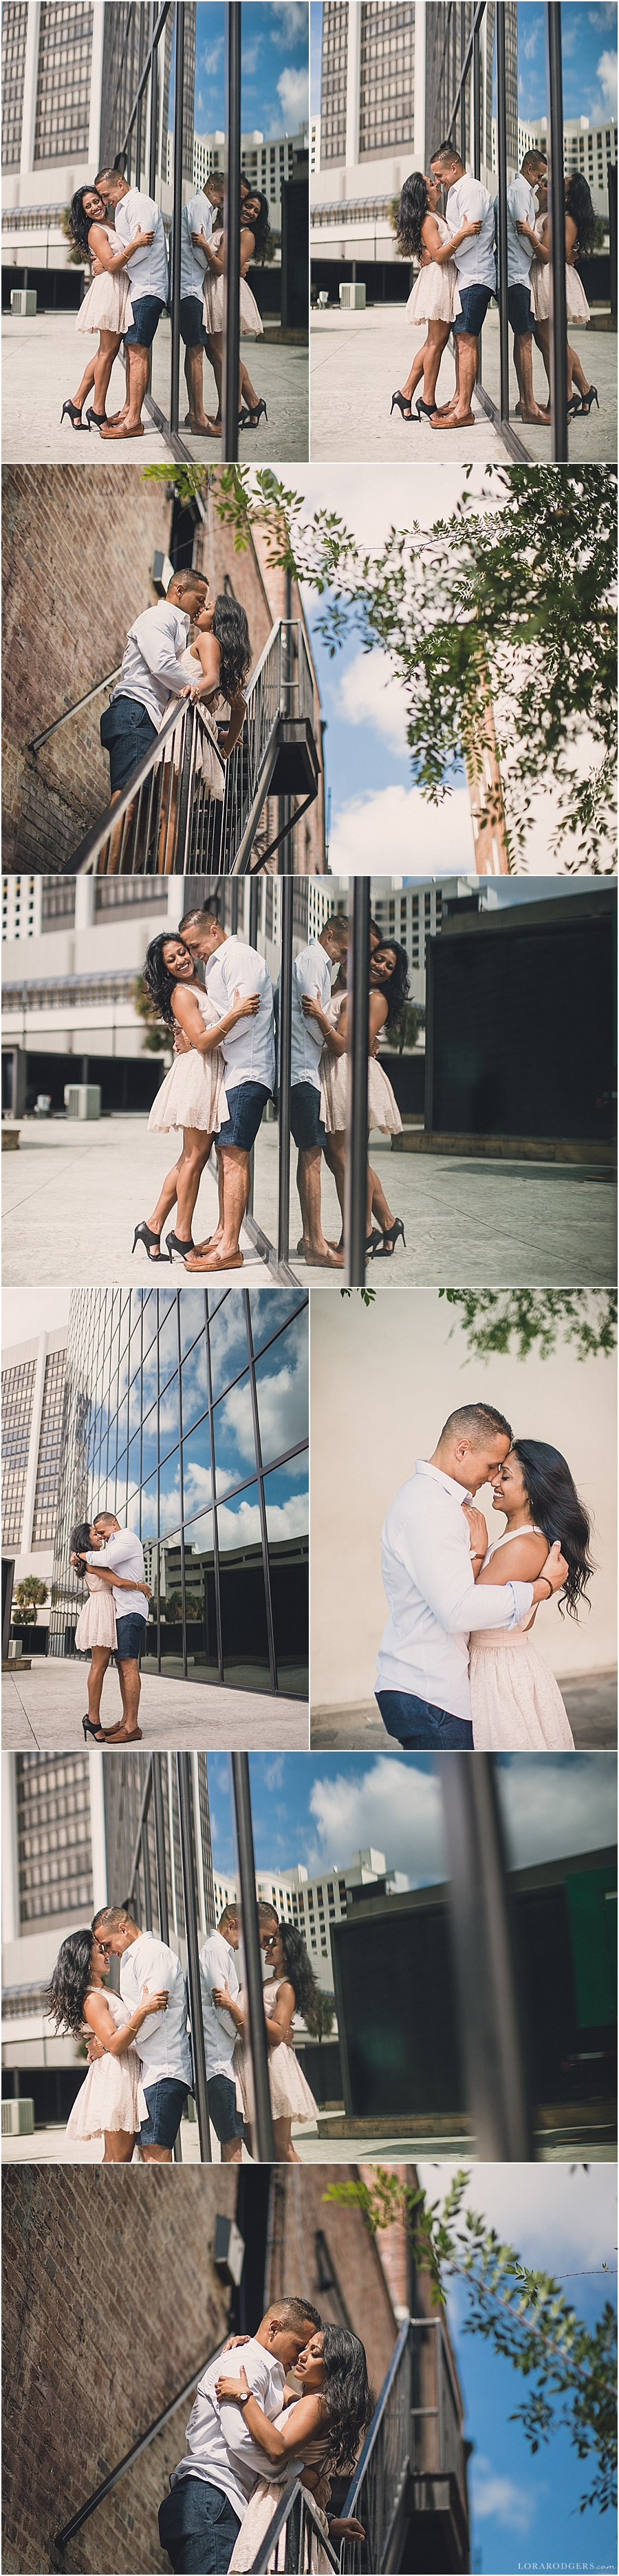 Downtown_Orlando_Florida_Engagement_005